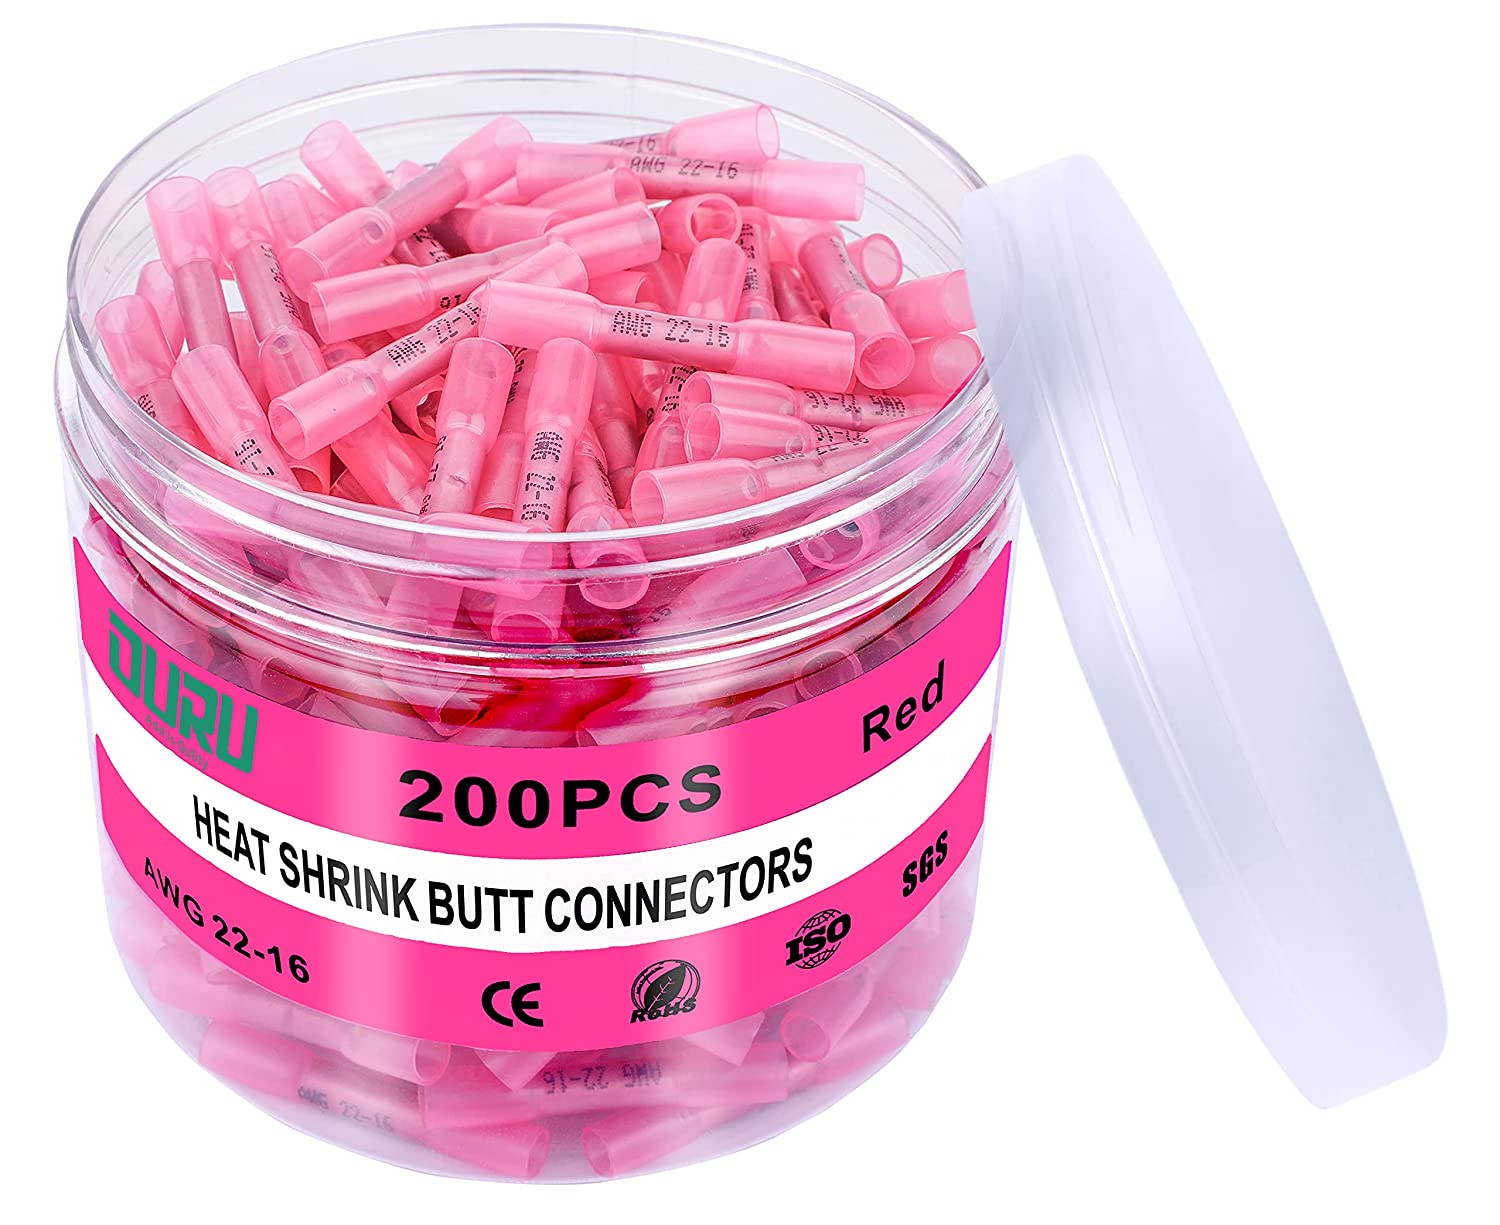 200Pcs Red Heat Shrink Butt Connectors OURU Marine Gra 22-16 Awg High quality new Manufacturer direct delivery